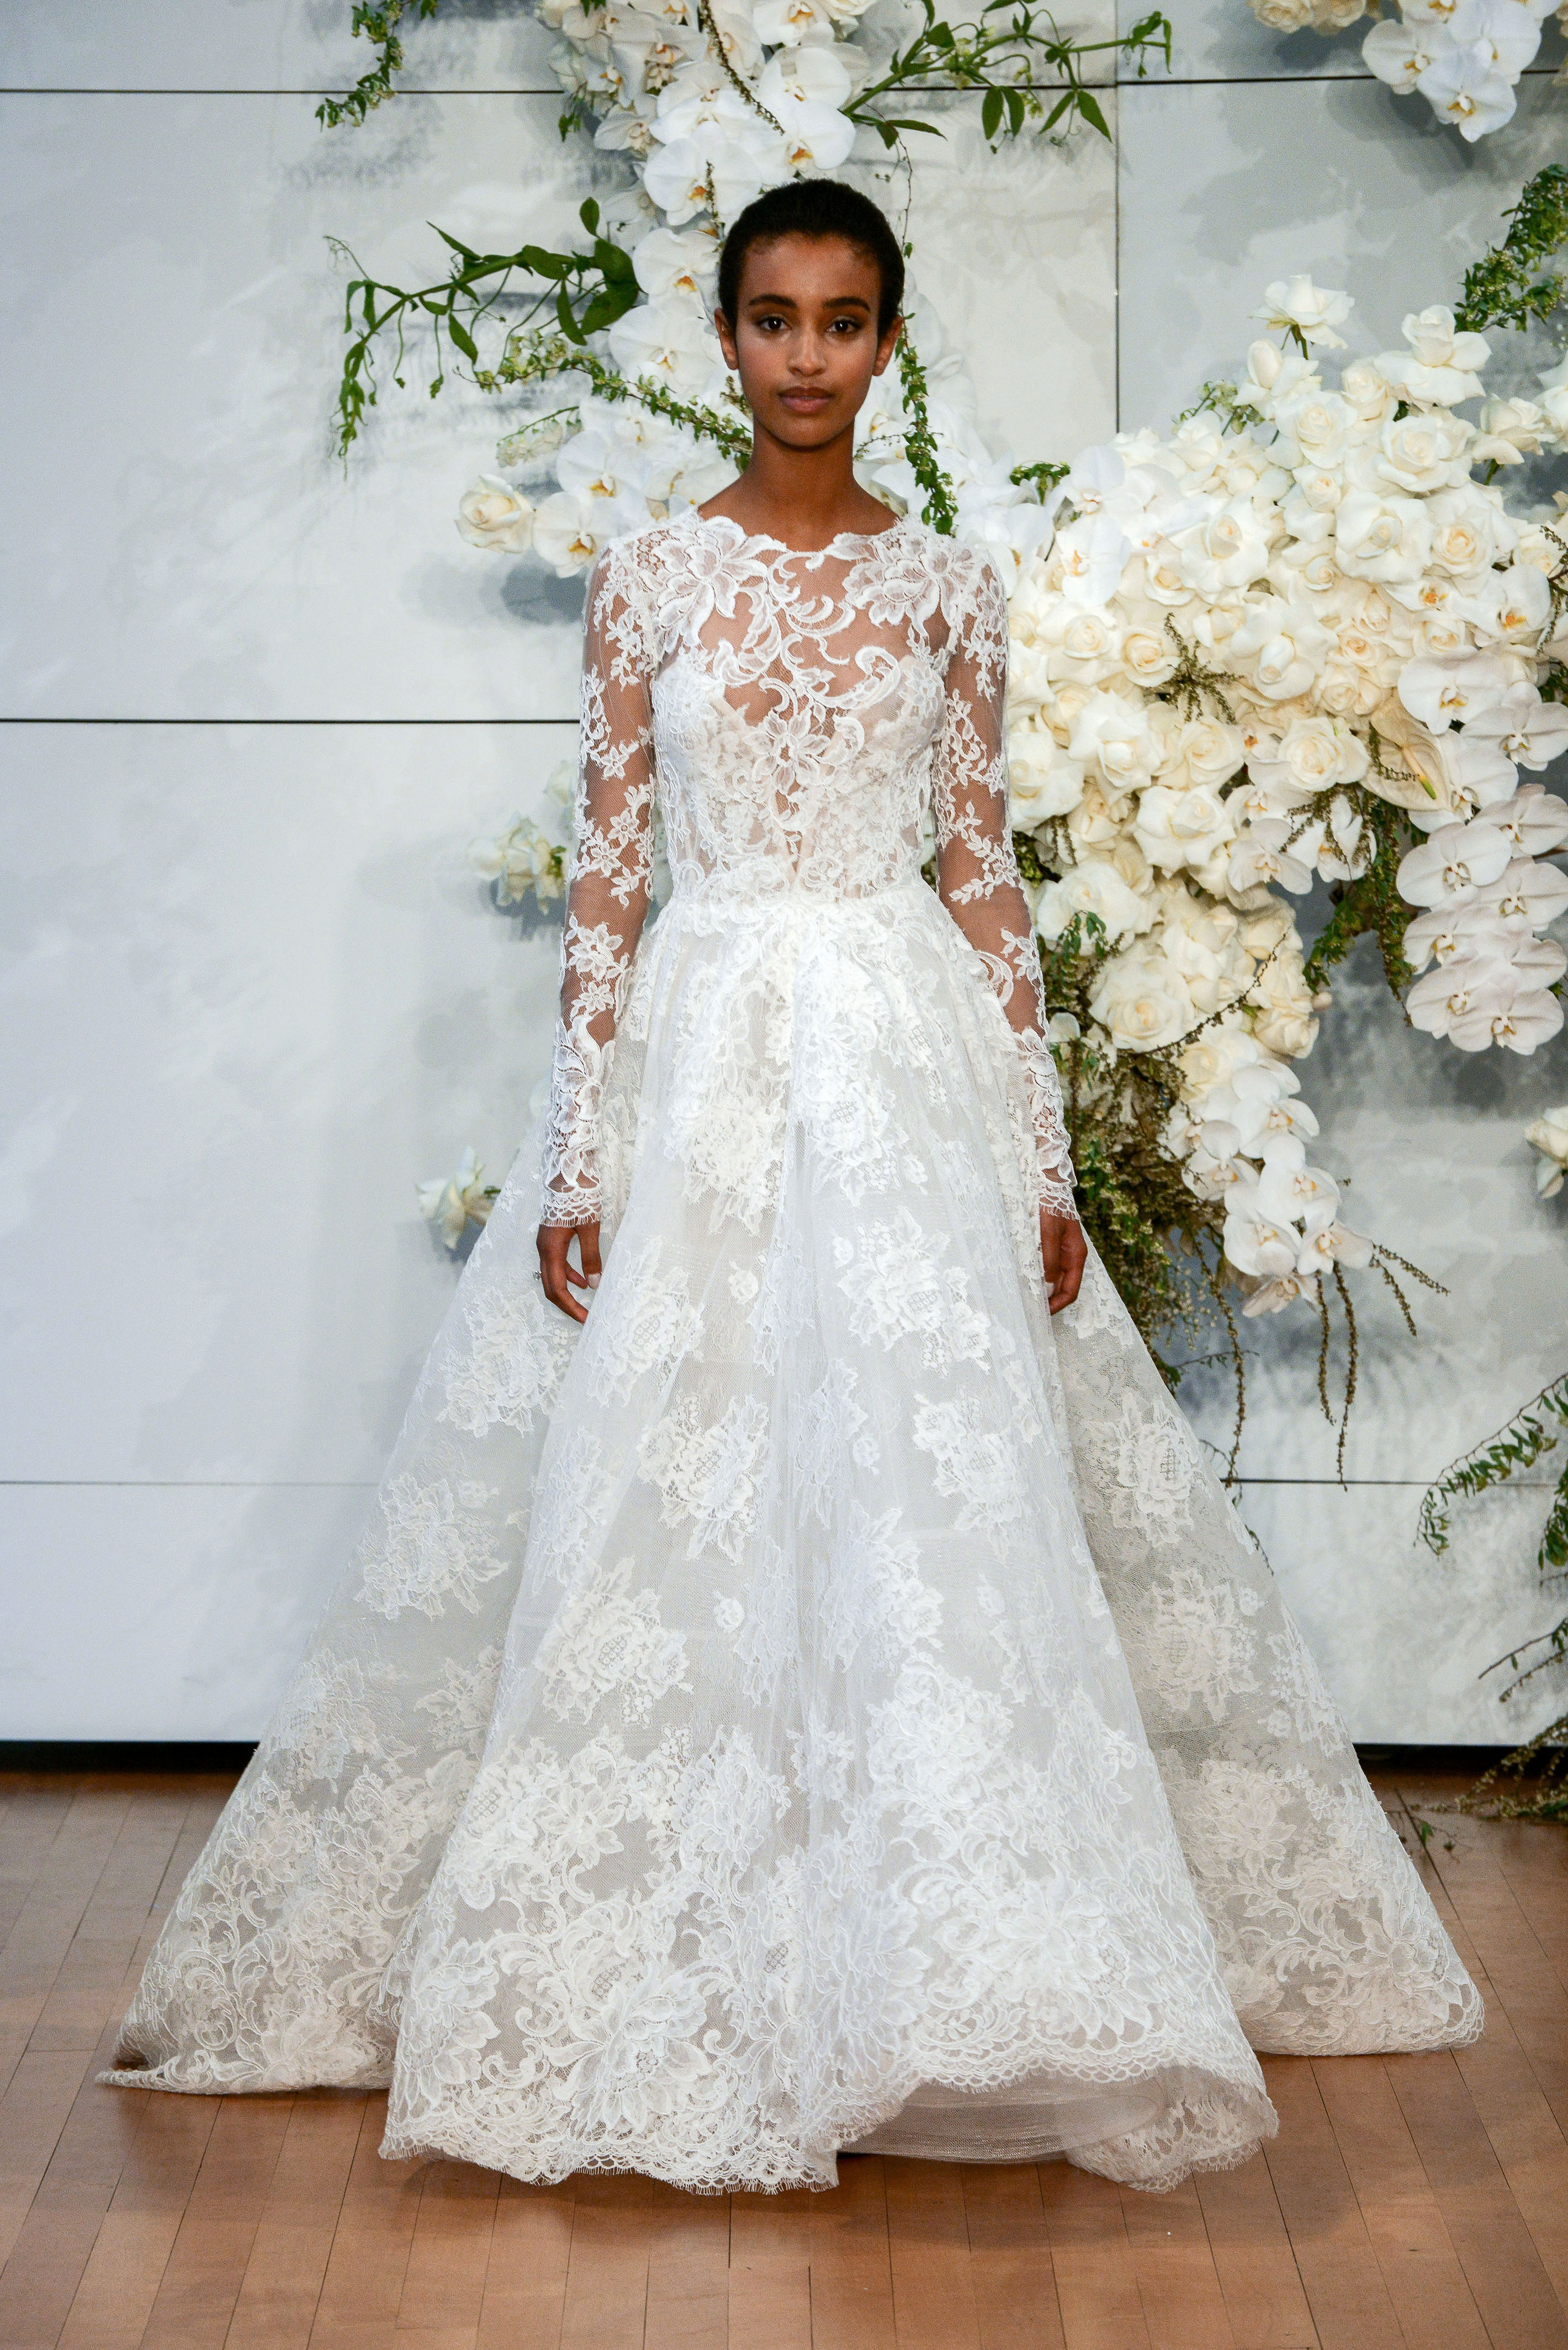 monique lhuillier long sleeves lace a-line wedding dress spring 2018